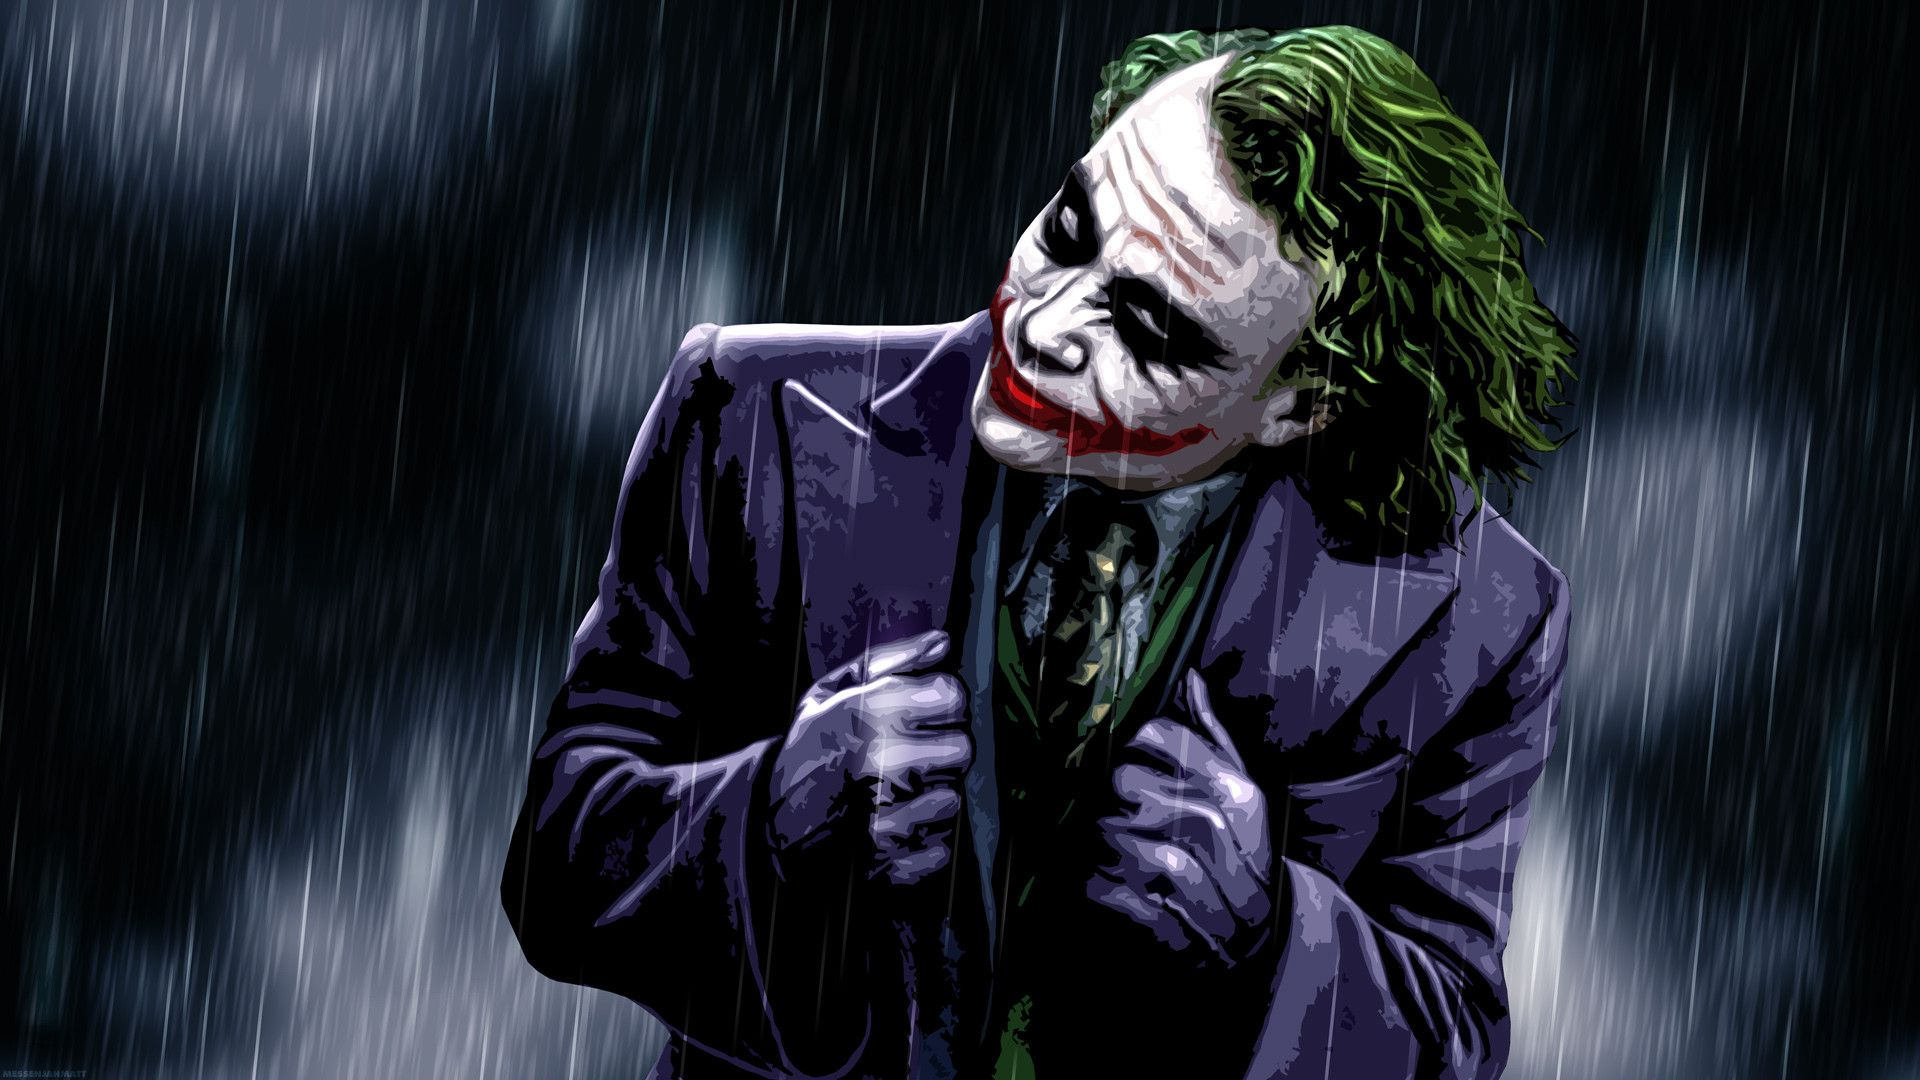 Joker Dark Knight Wallpapers - Wallpaper Cave